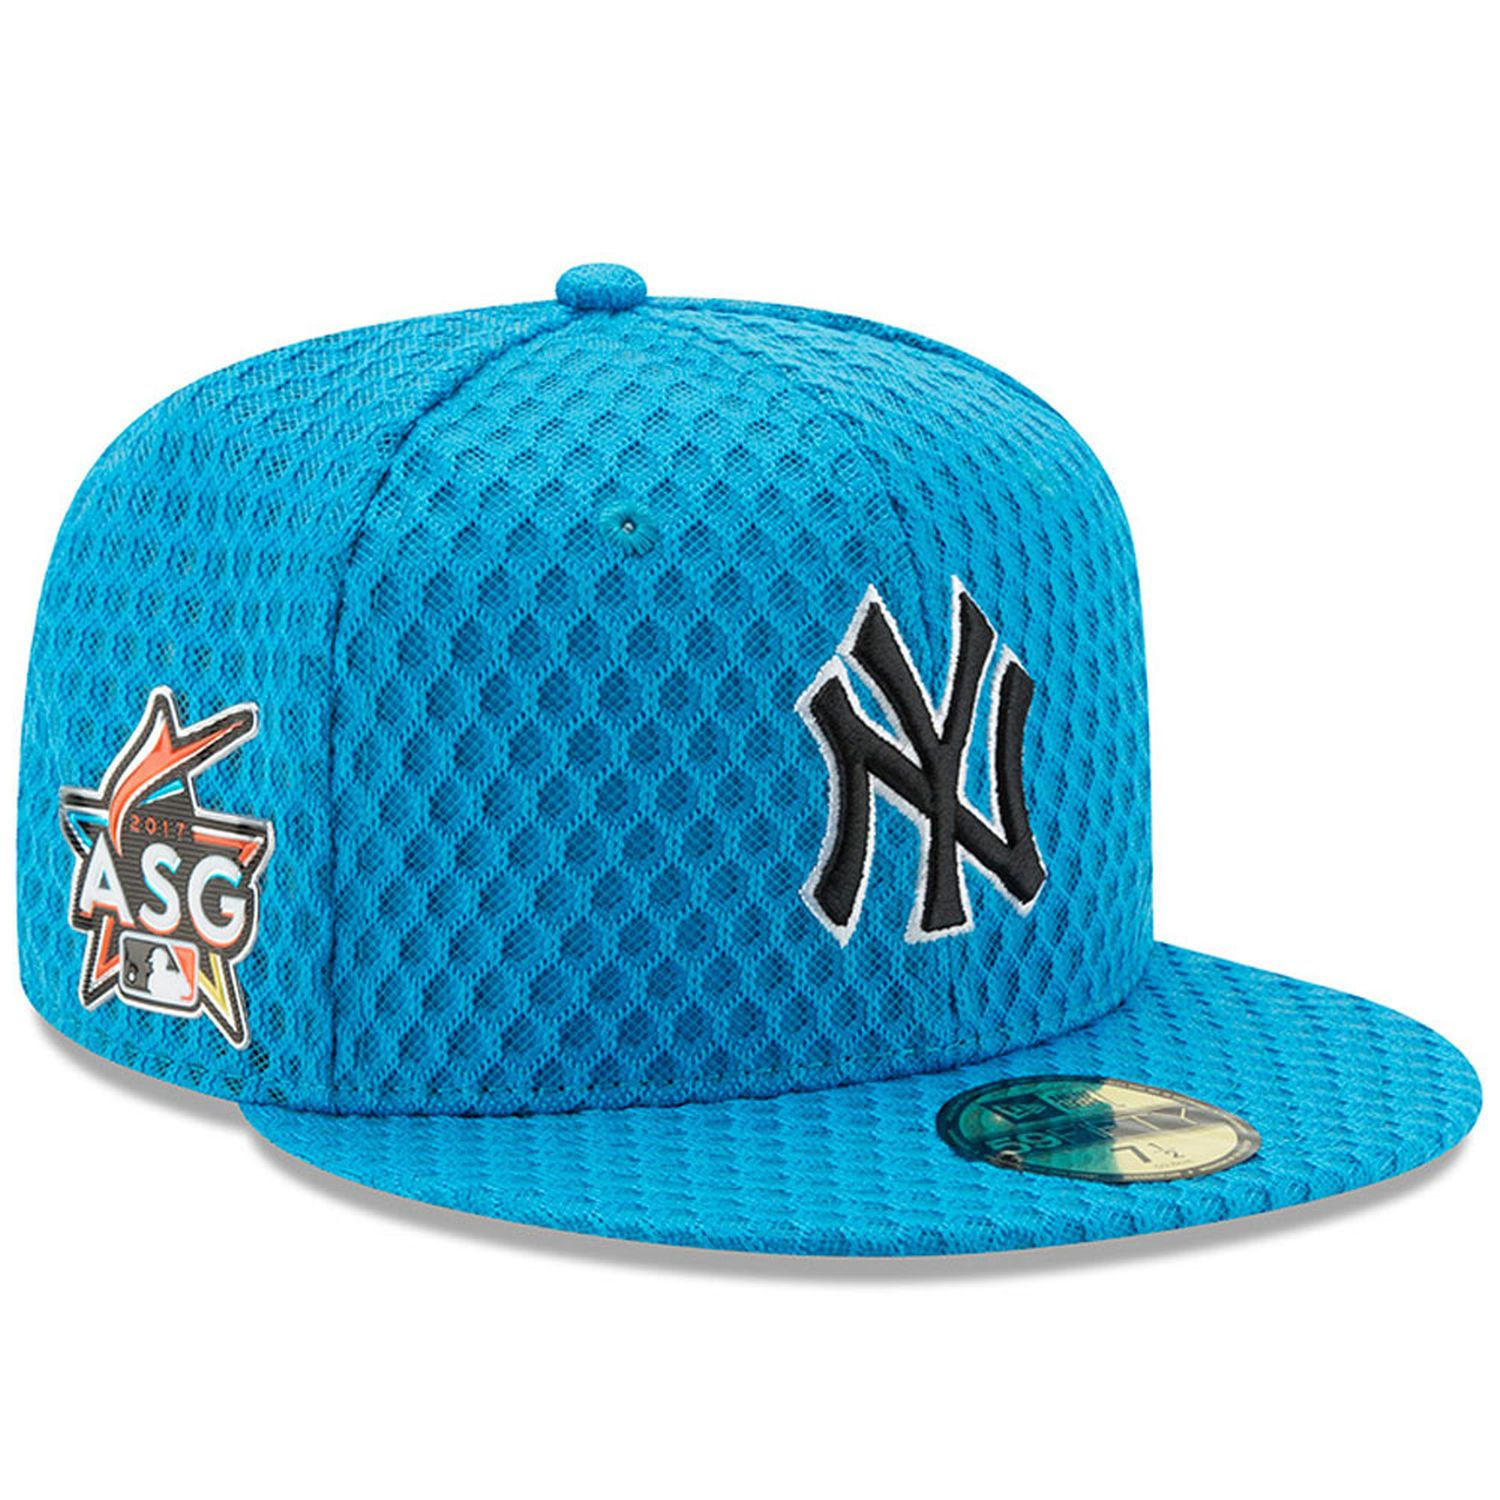 4c73f8690652e5 Men's New York Yankees New Era Blue 2017 Home Run Derby Side Patch 59FIFTY  Fitted Hat